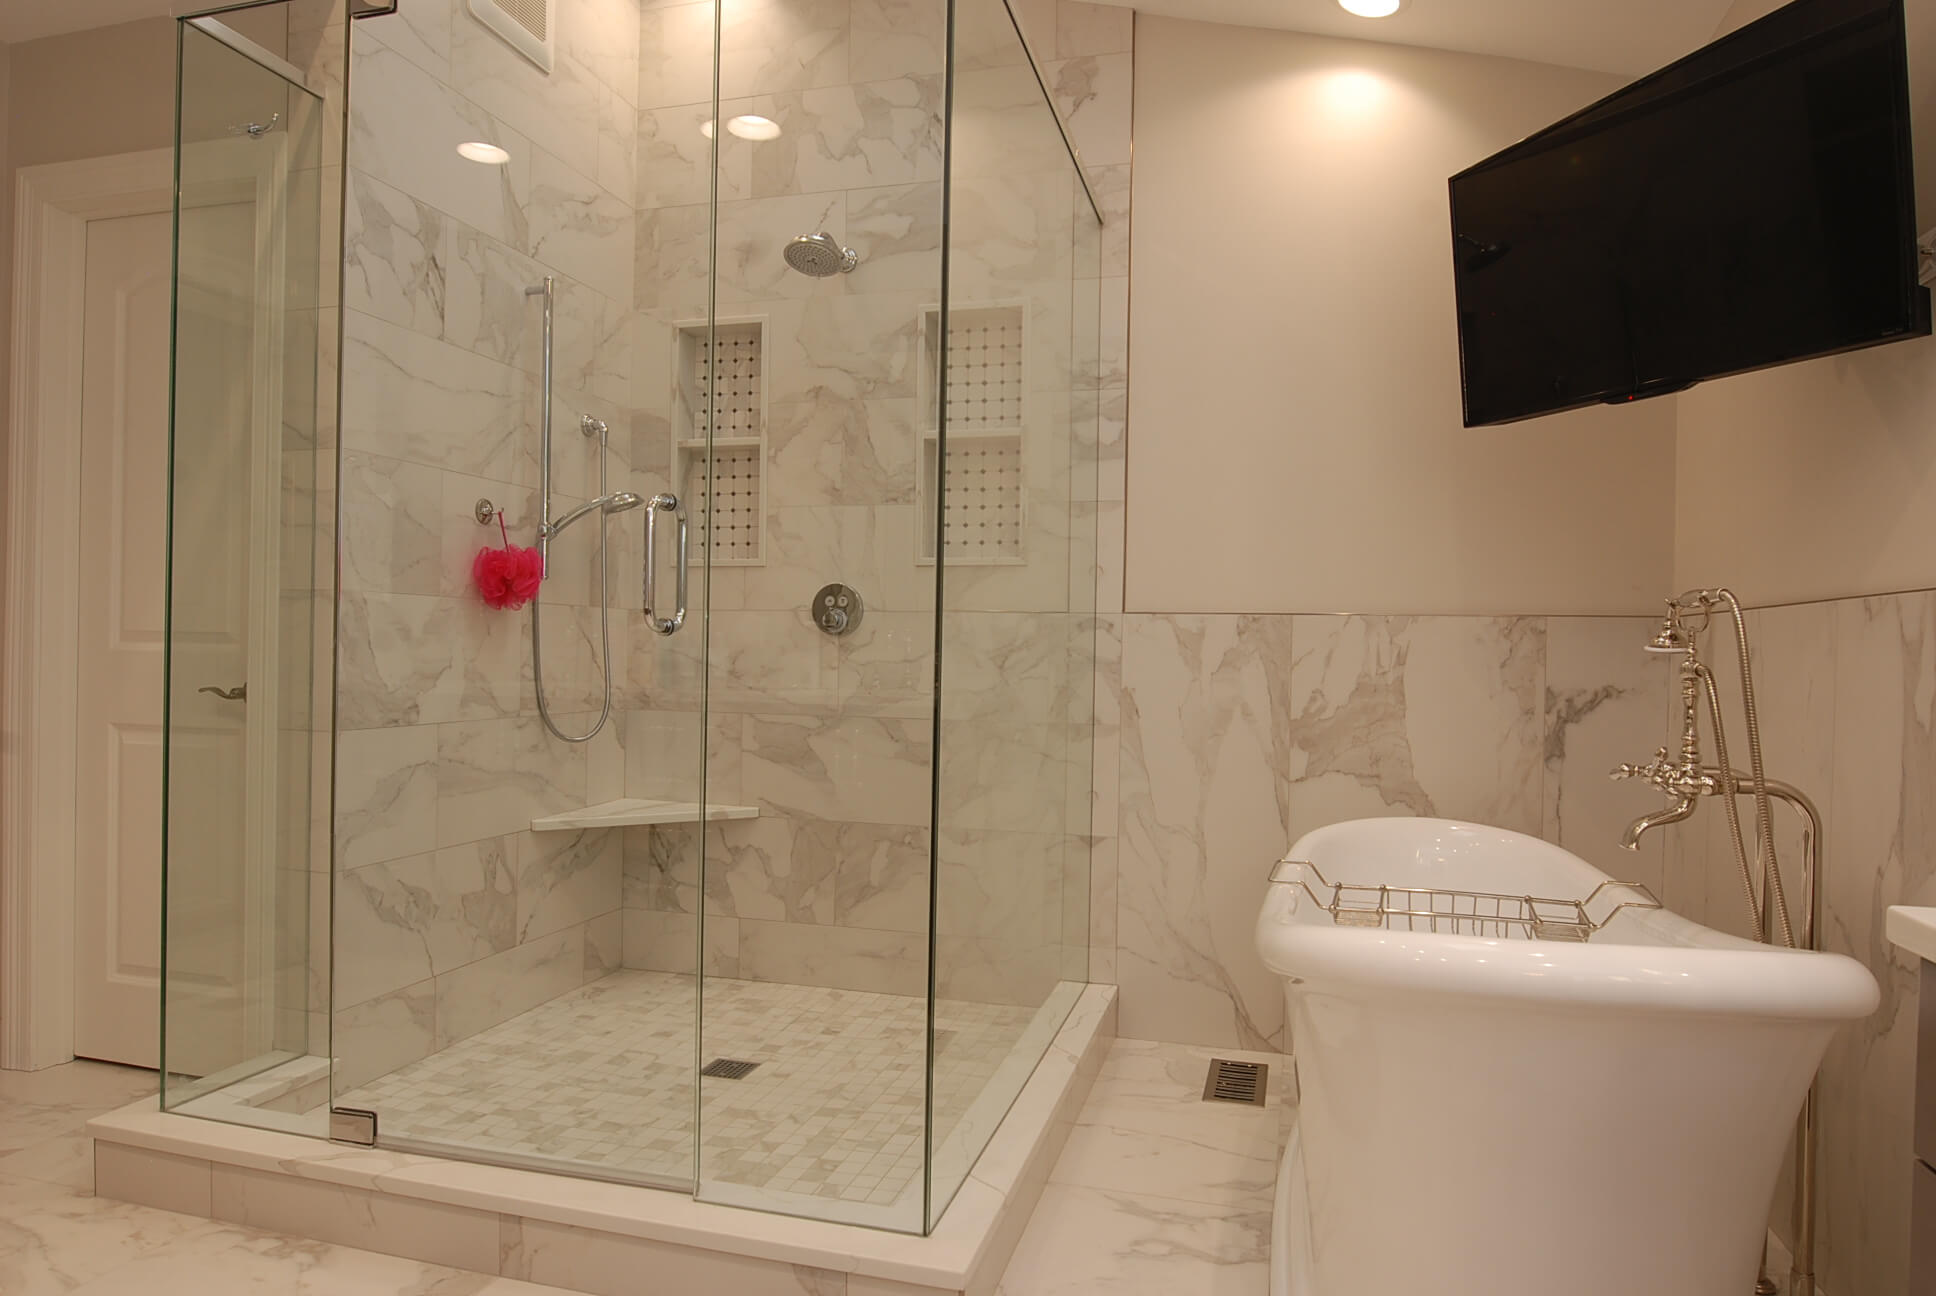 Bathroom Remodel Is Marble A Good Choice For Shower Walls And Floors